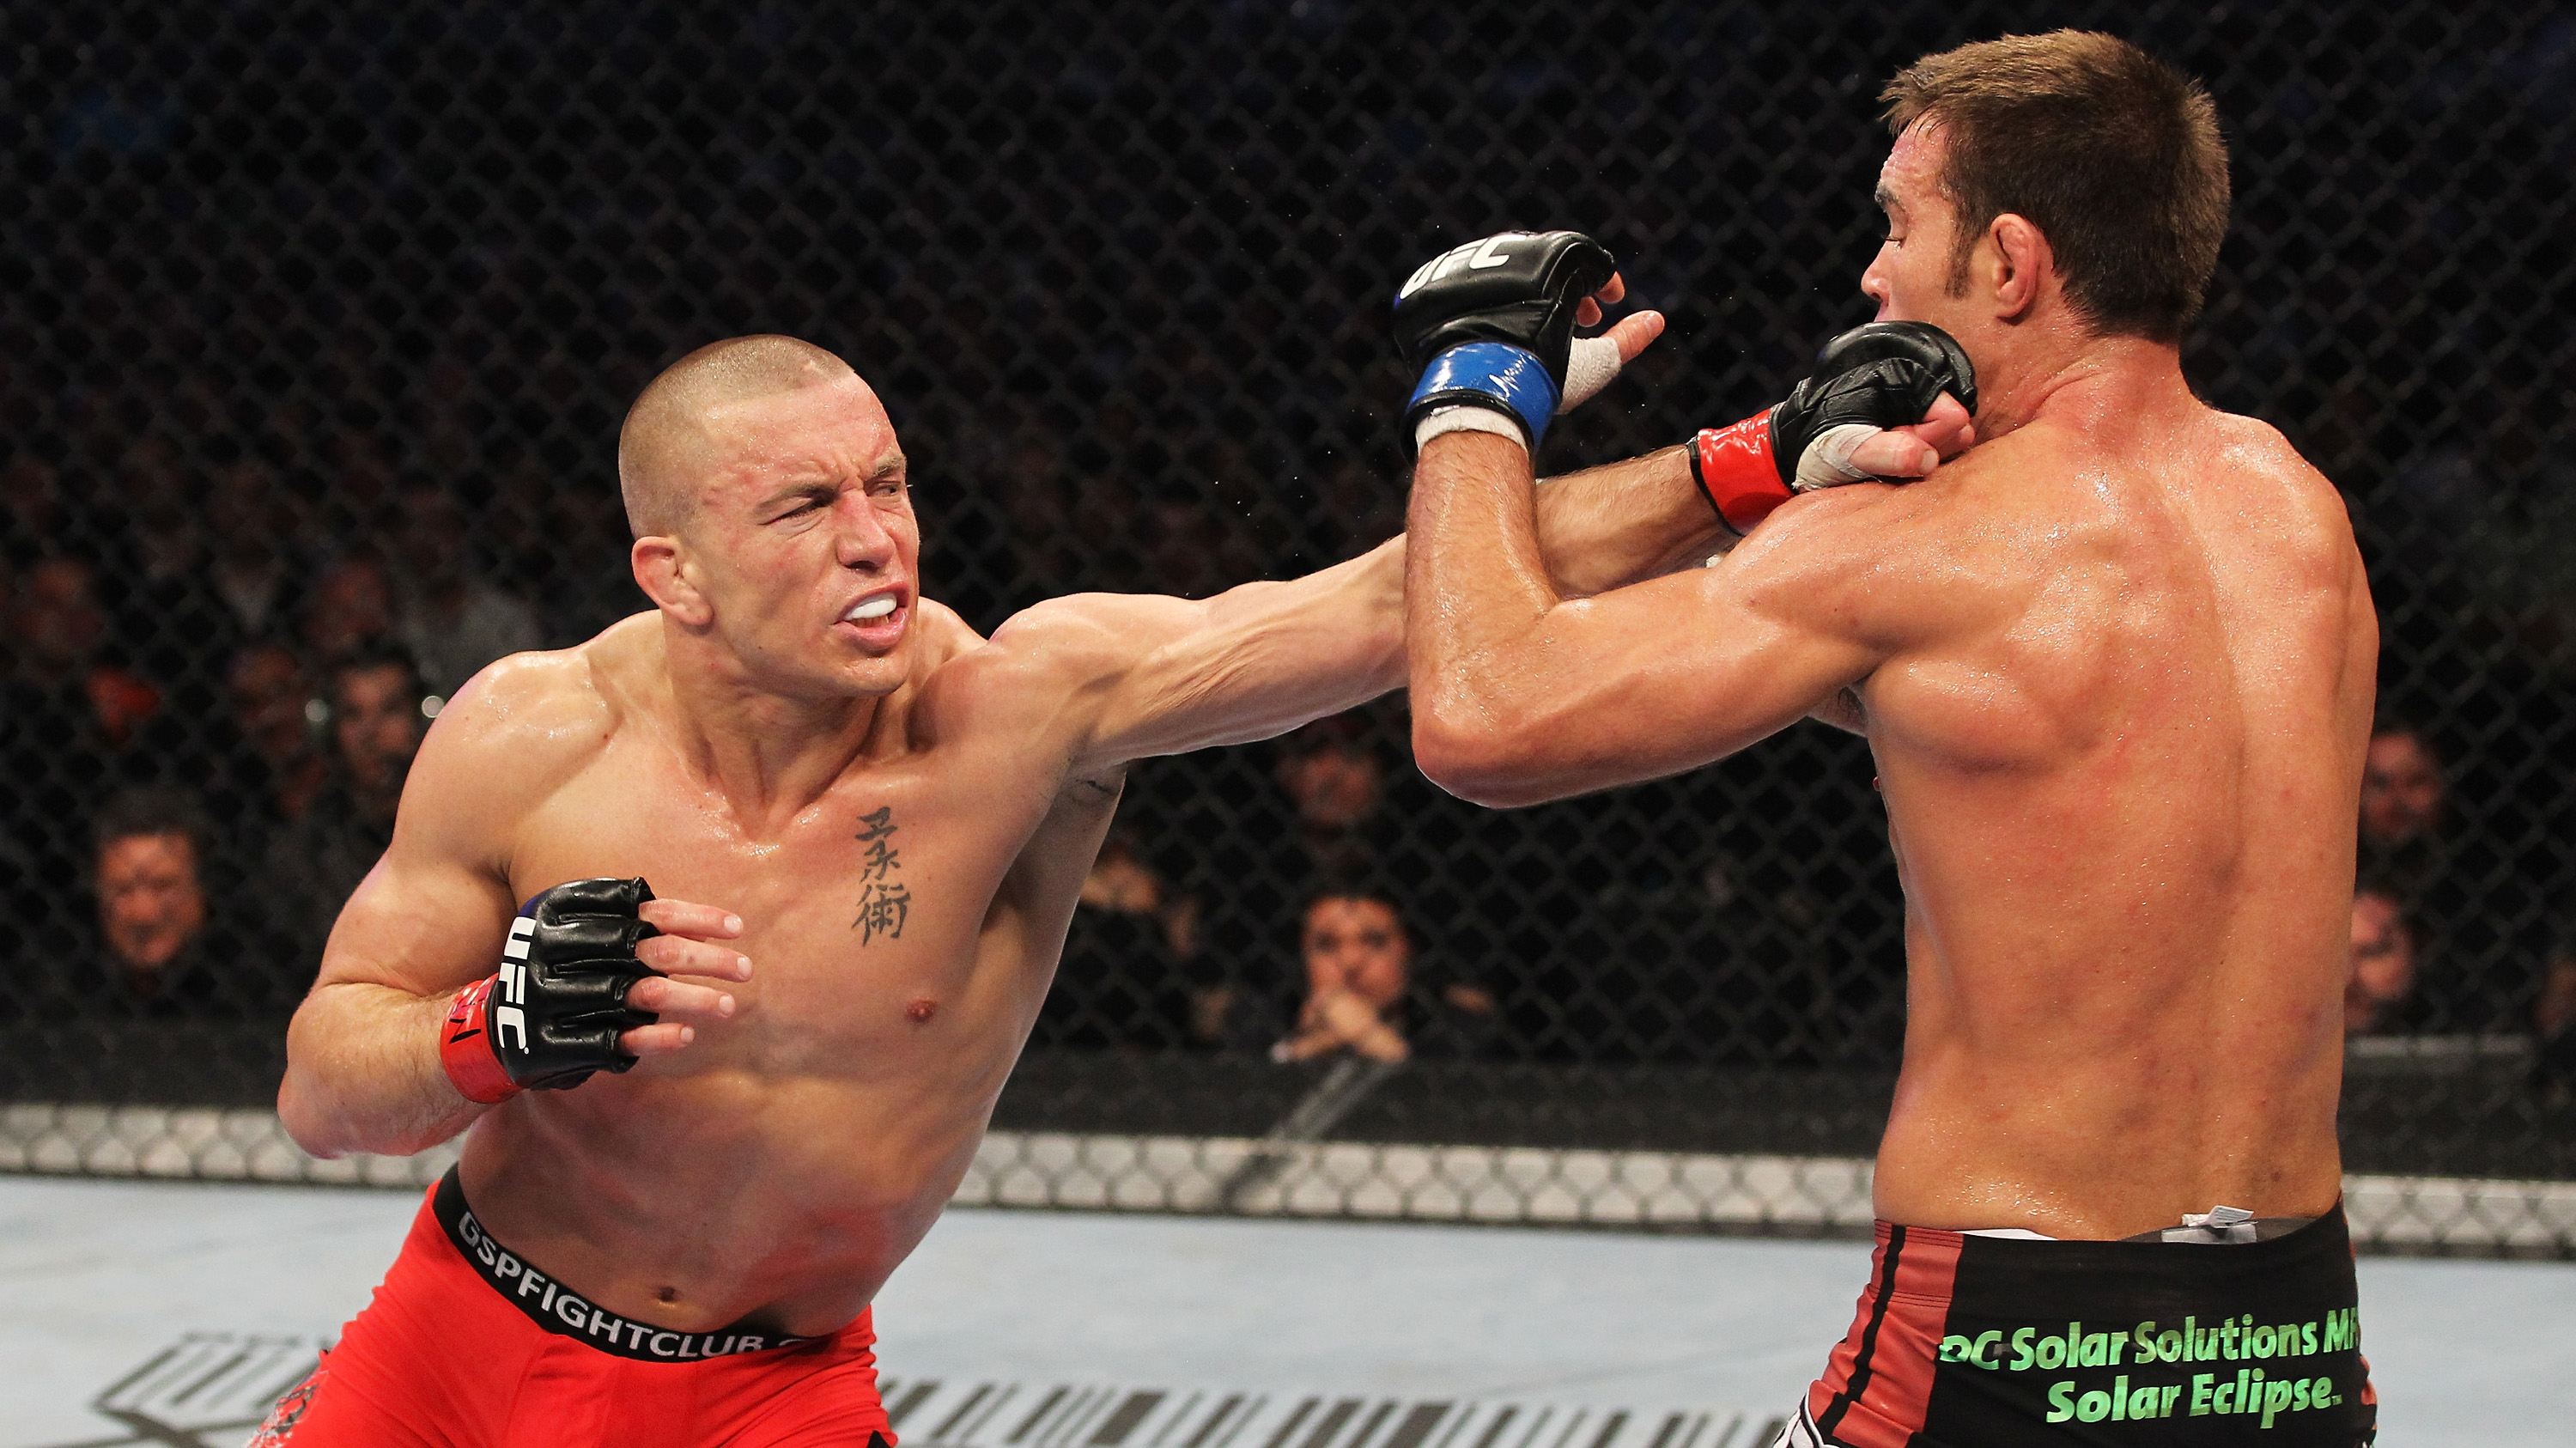 TORONTO, ON - APRIL 30:  Georges St-Pierre (L) punches <a href='../fighter/Jake-Shields'>Jake Shields</a> during their Welterweight Championship bout at <a href='../event/UFC129'>UFC 129 </a>in the Rogers Centre on April 30, 2011 in Toronto, Ontario. (Photo by Al Bello/Zuffa LLC)